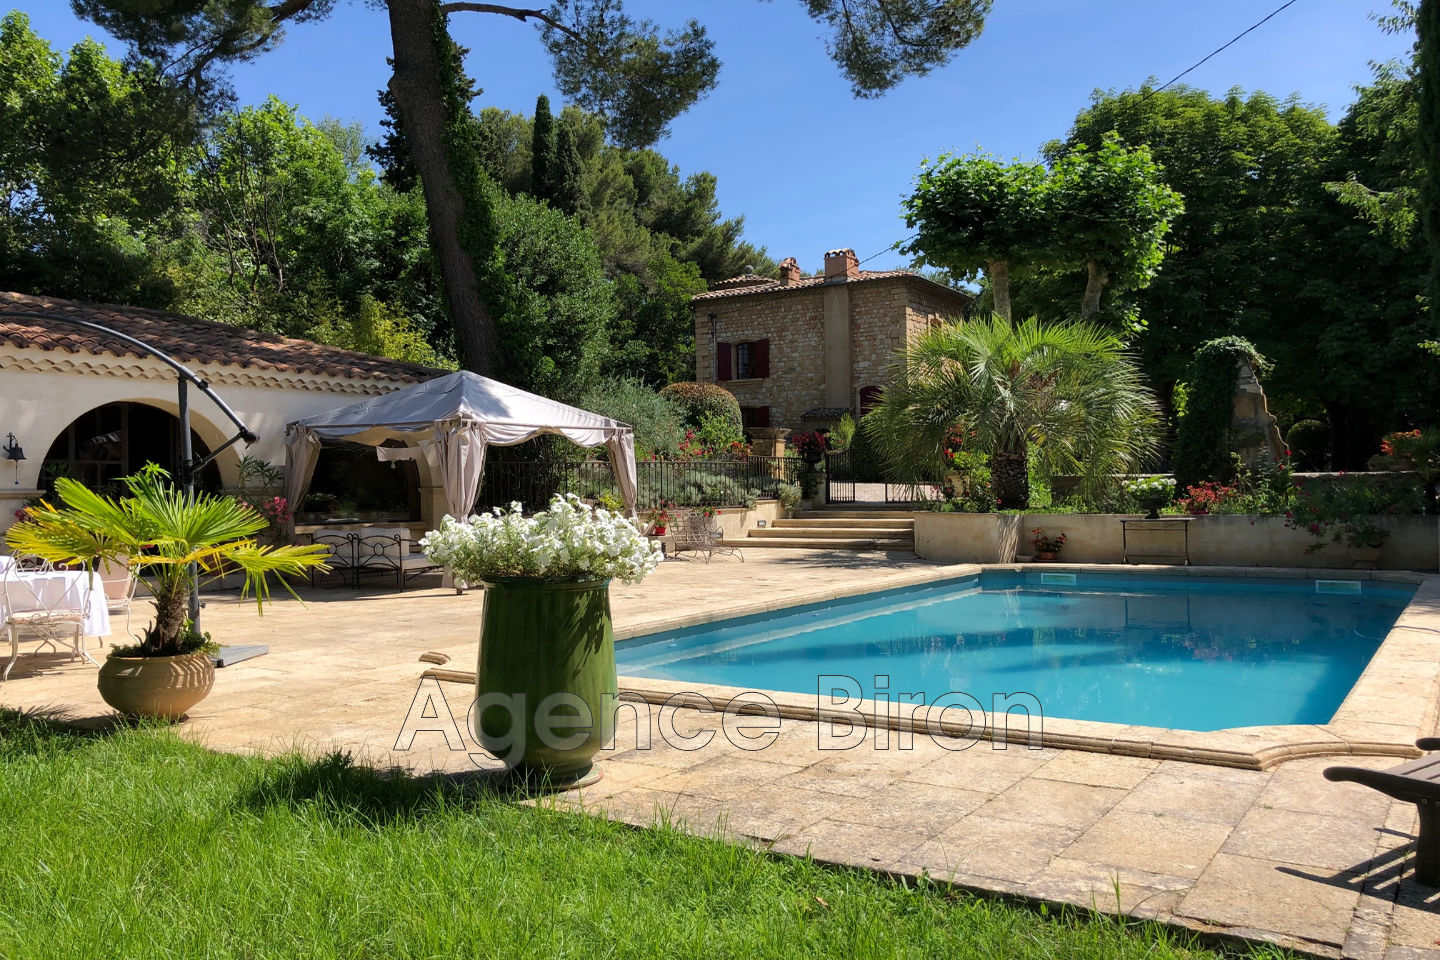 10 bedroom stone house for saleAix-en-ProvenceDowntown 10 m²